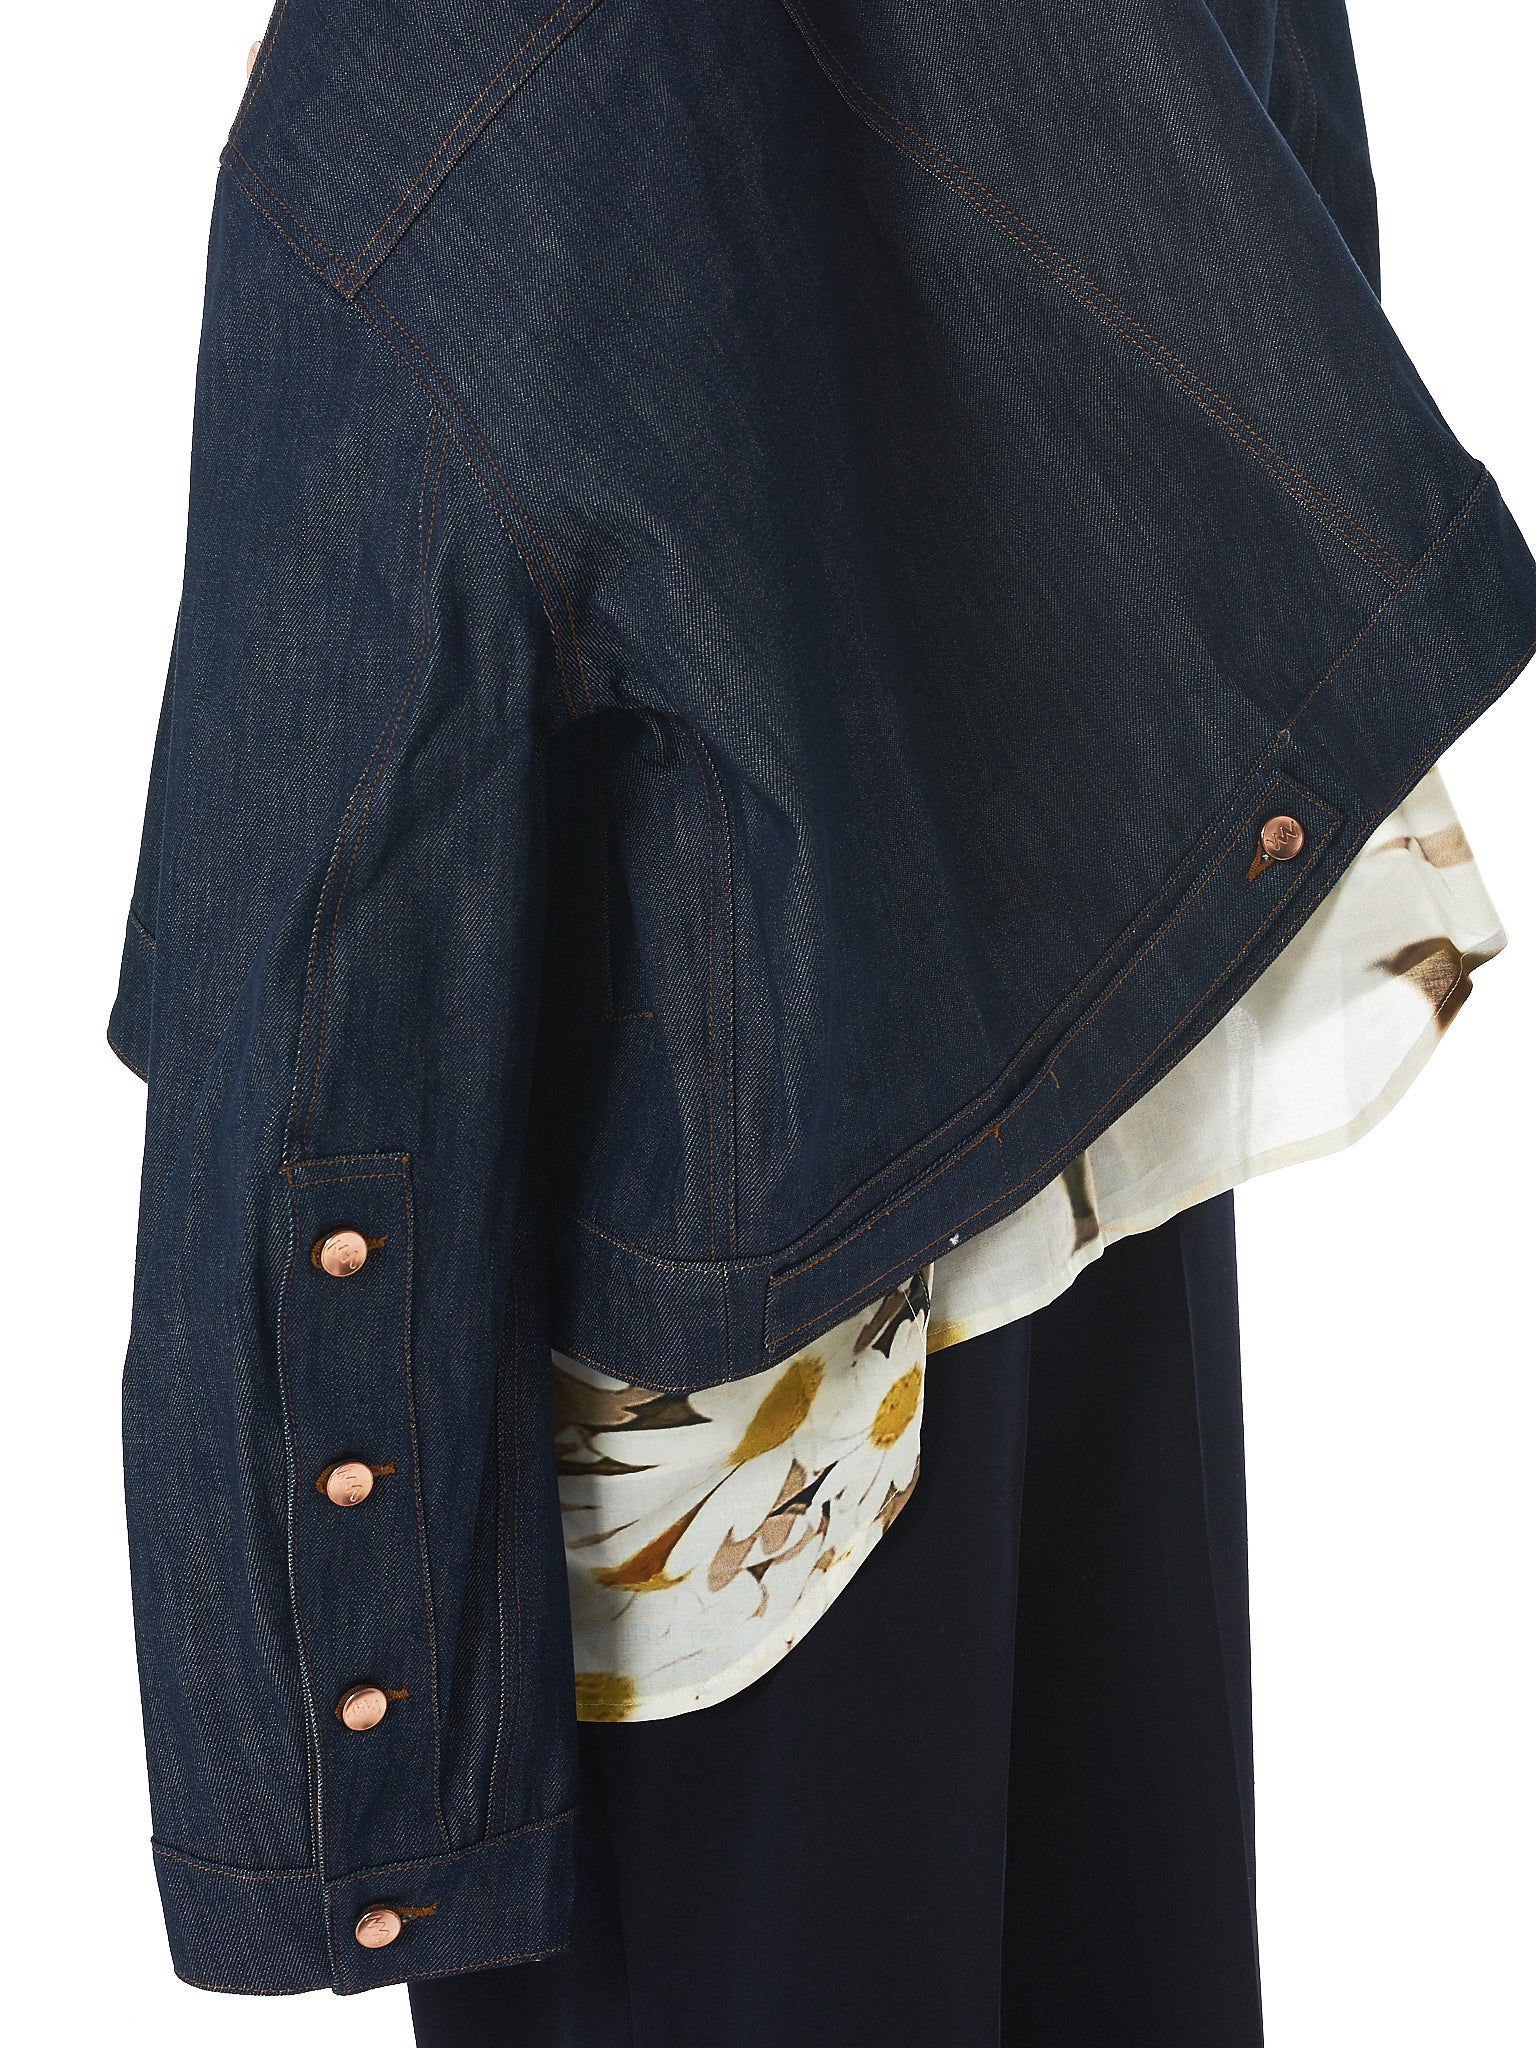 Alex Mullins Denim Jacket - Hlorenzo Detail 5